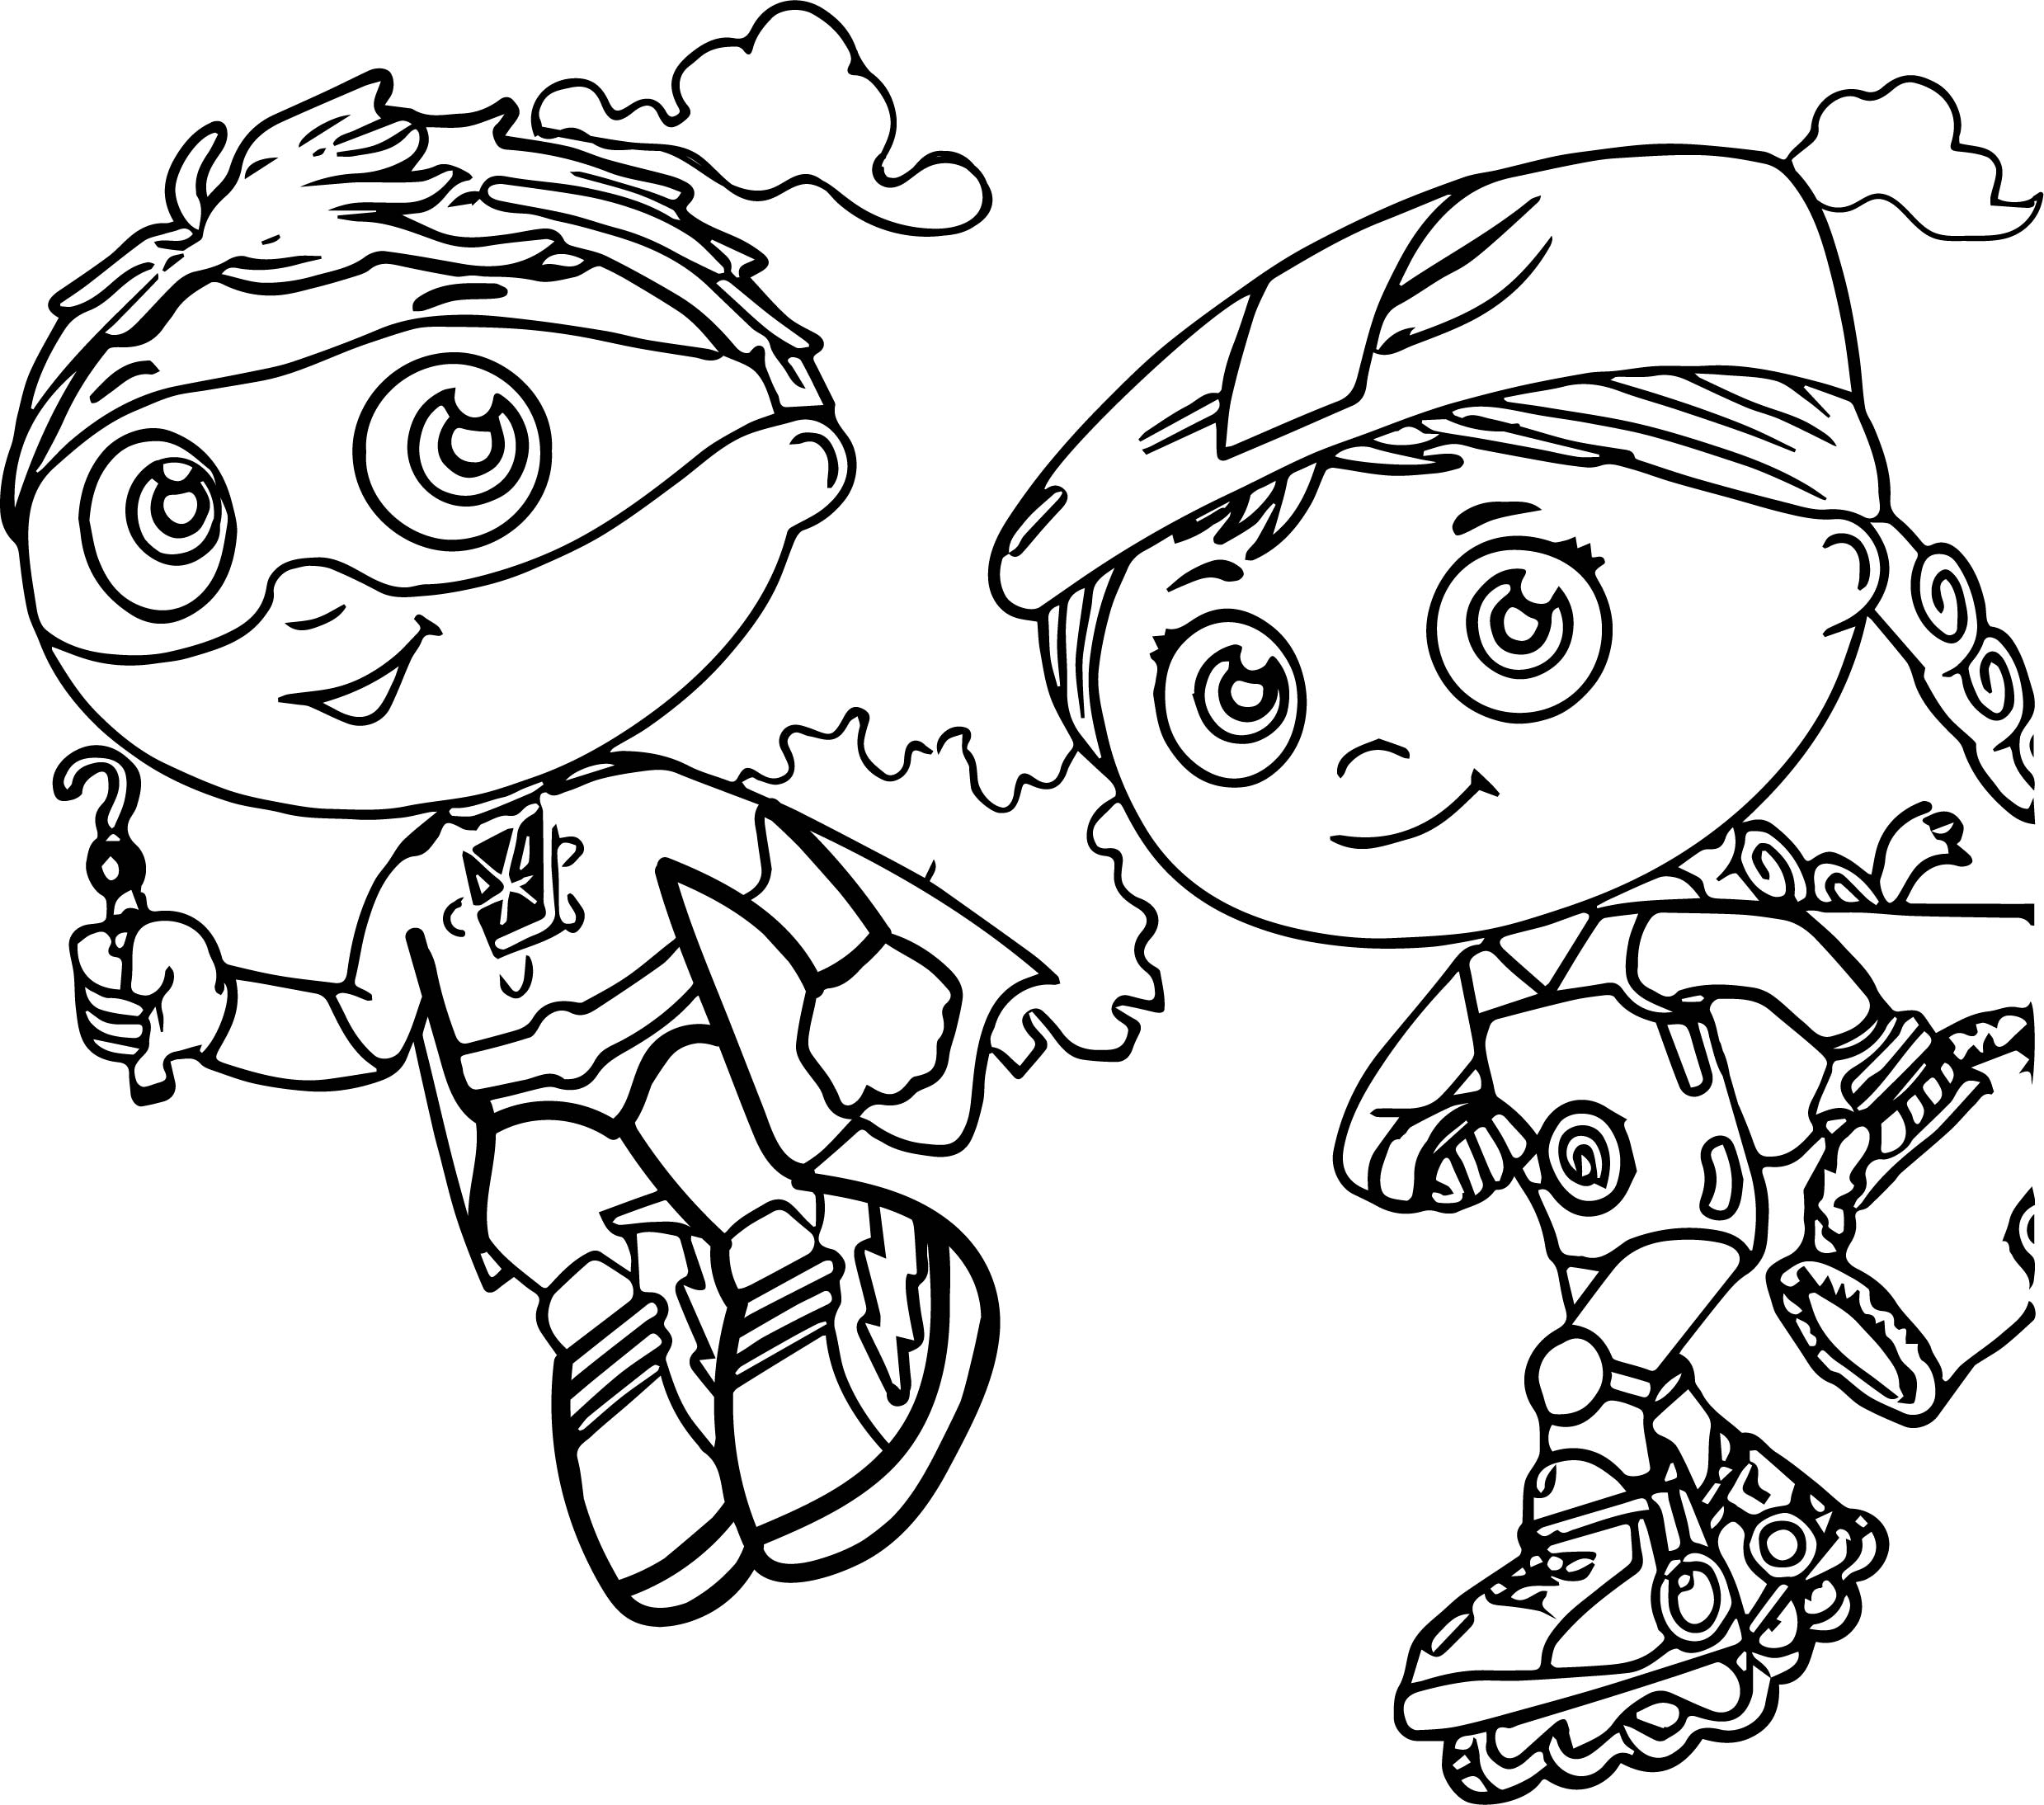 Super why coloring pages best coloring pages for kids for Best coloring pages for kids